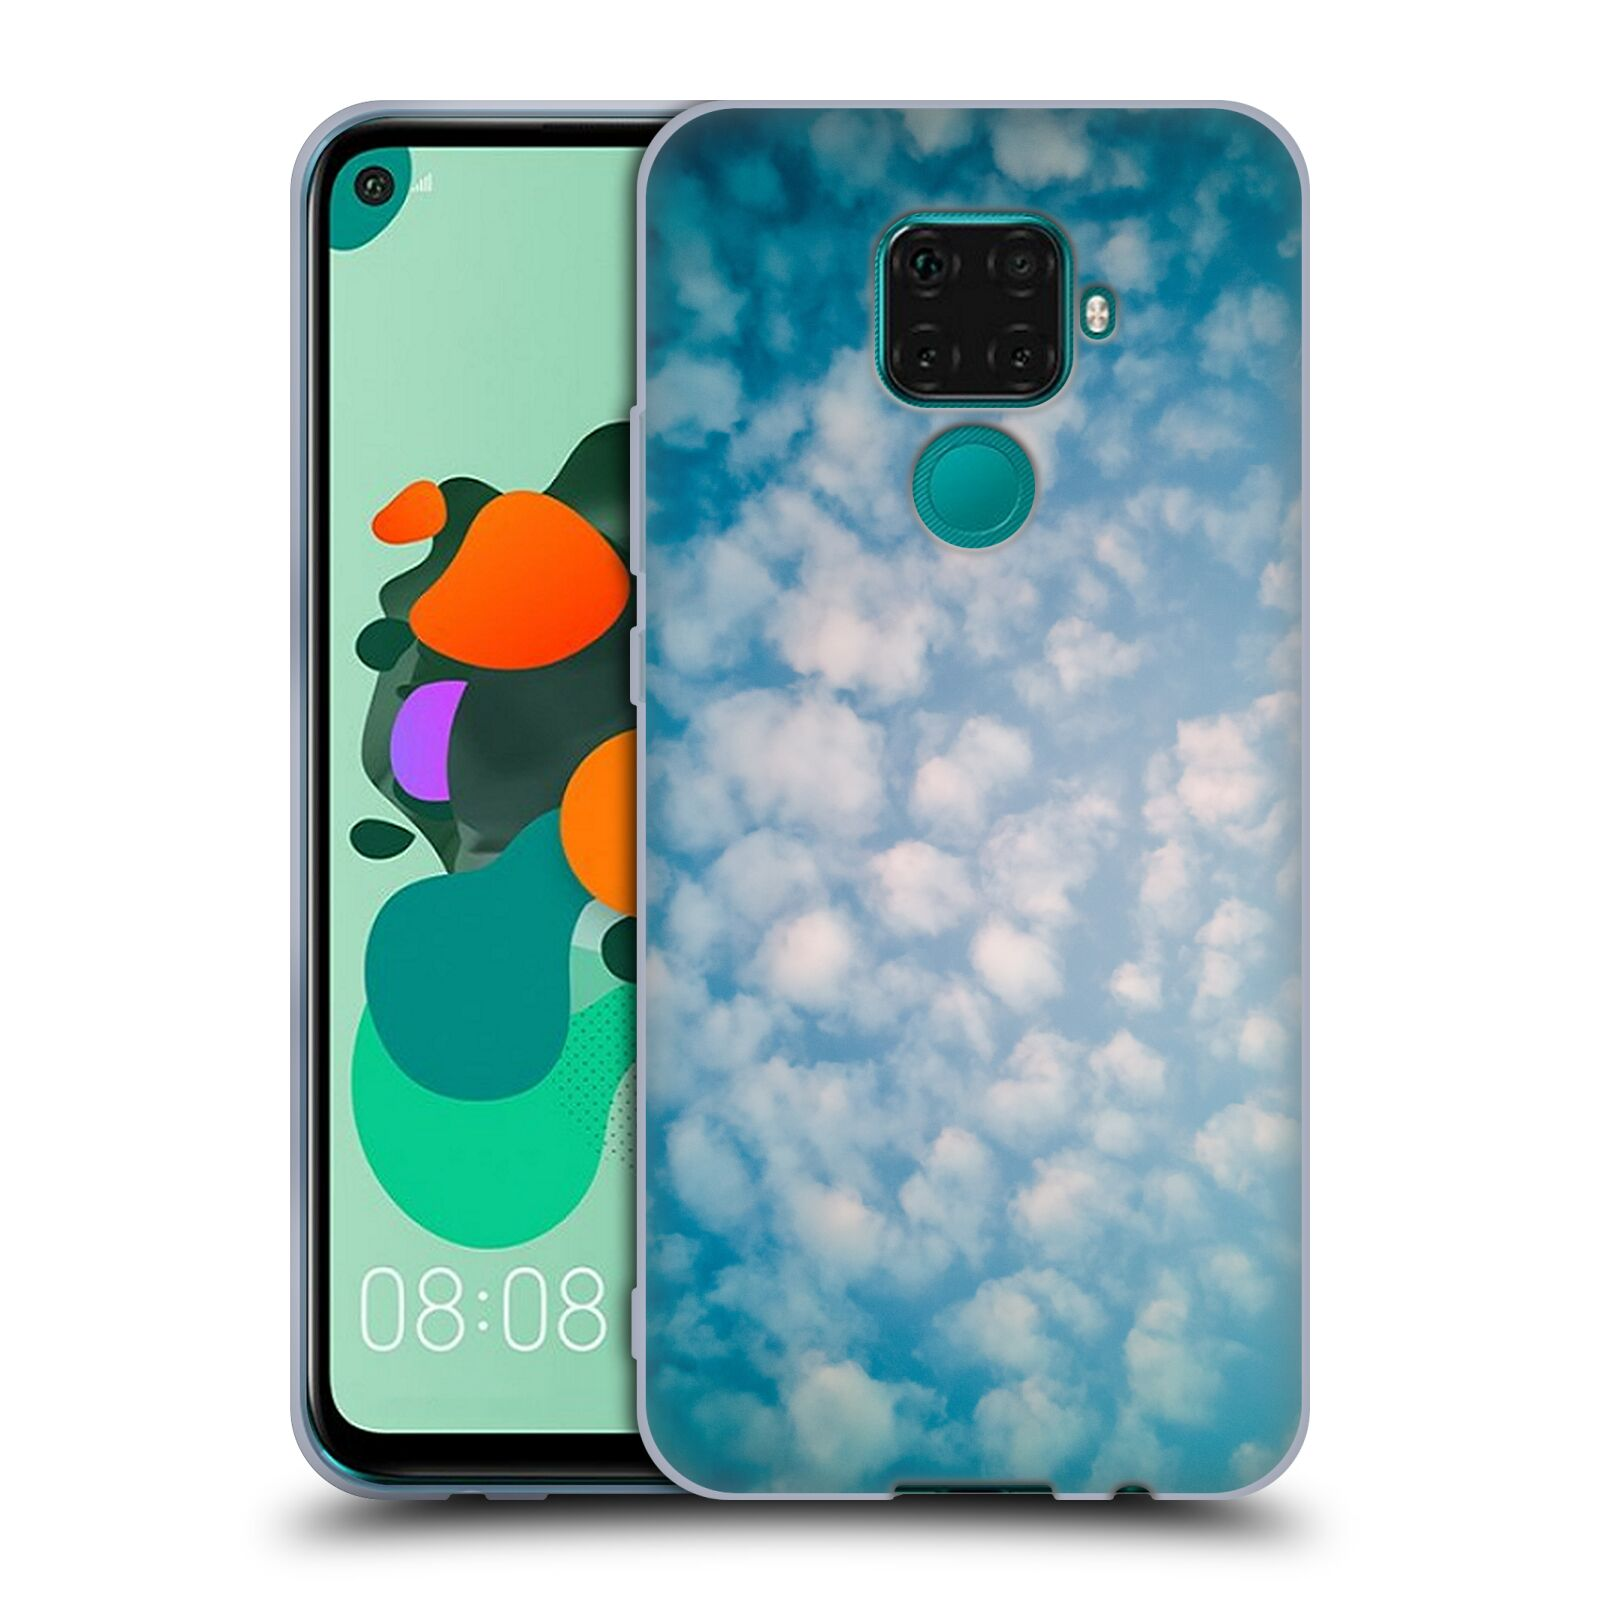 Official PLdesign Clouds Altocumulus Gel Case for Huawei Nova 5i Pro/Mate 30 Lite